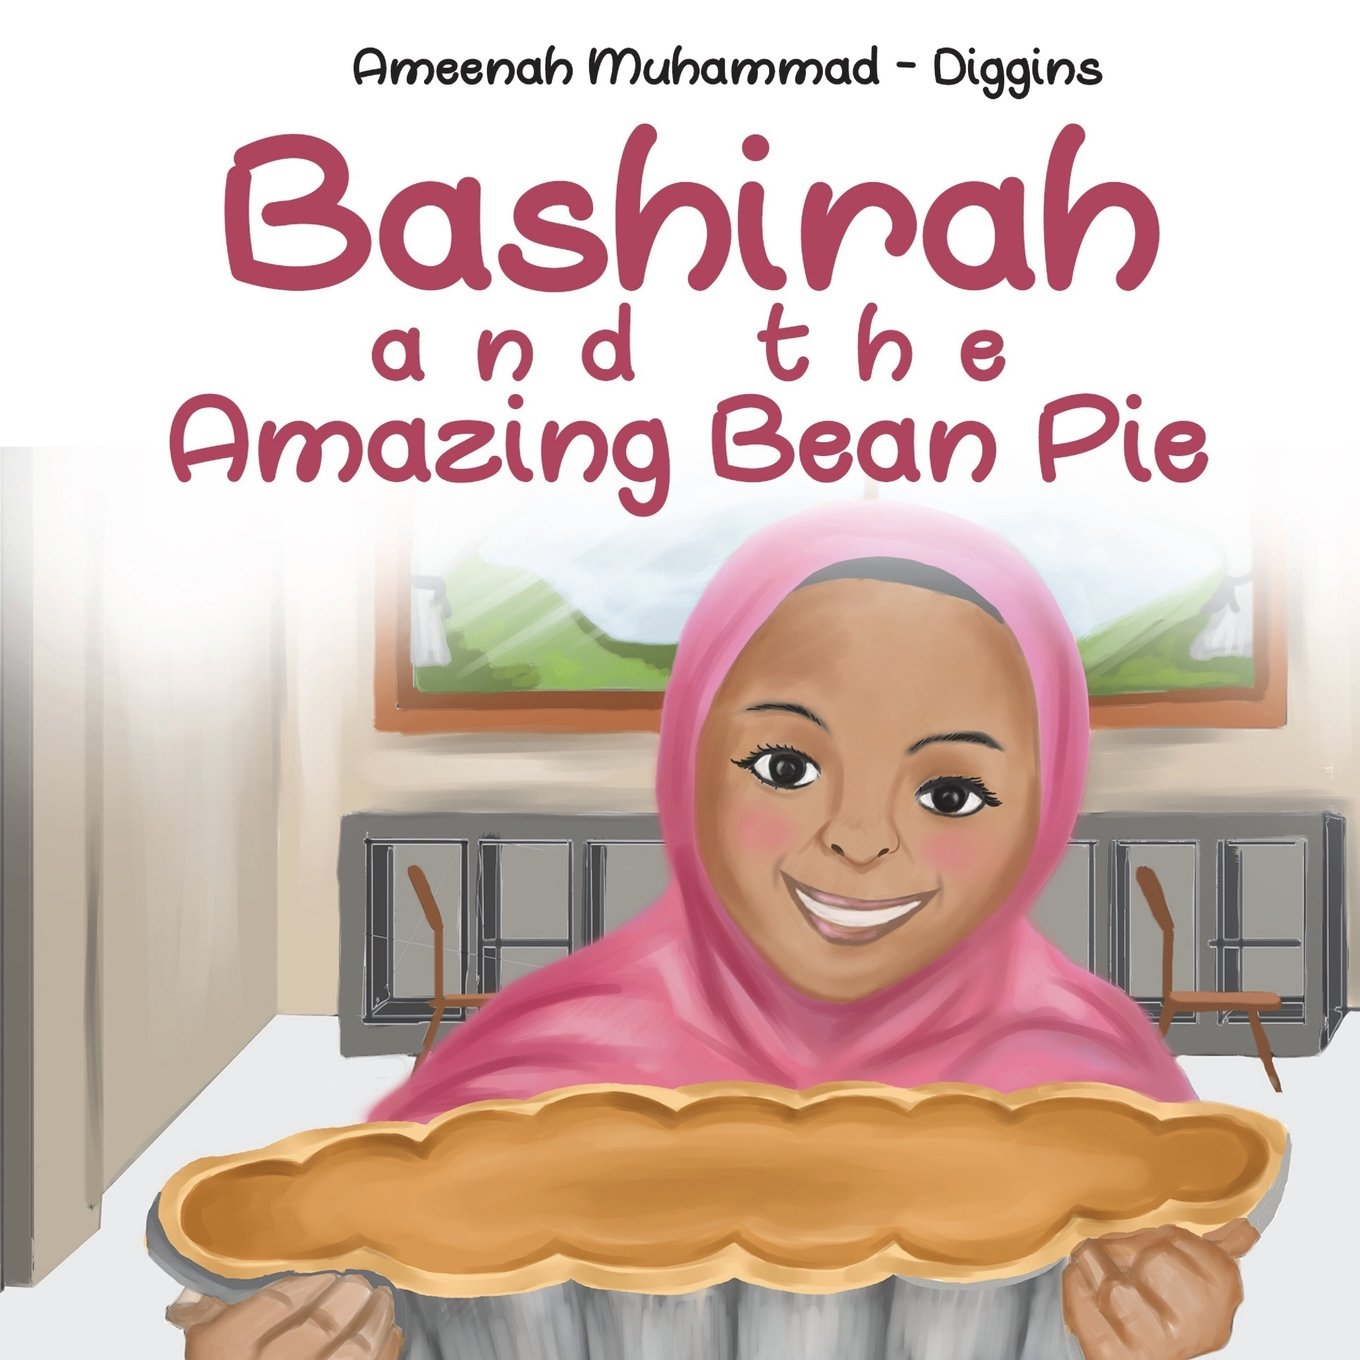 Bashirah And The Amazing Bean Pie A Celebration Of African American Muslim Culture Muhammad Diggins Ameenah 9781720509028 Amazon Com Books